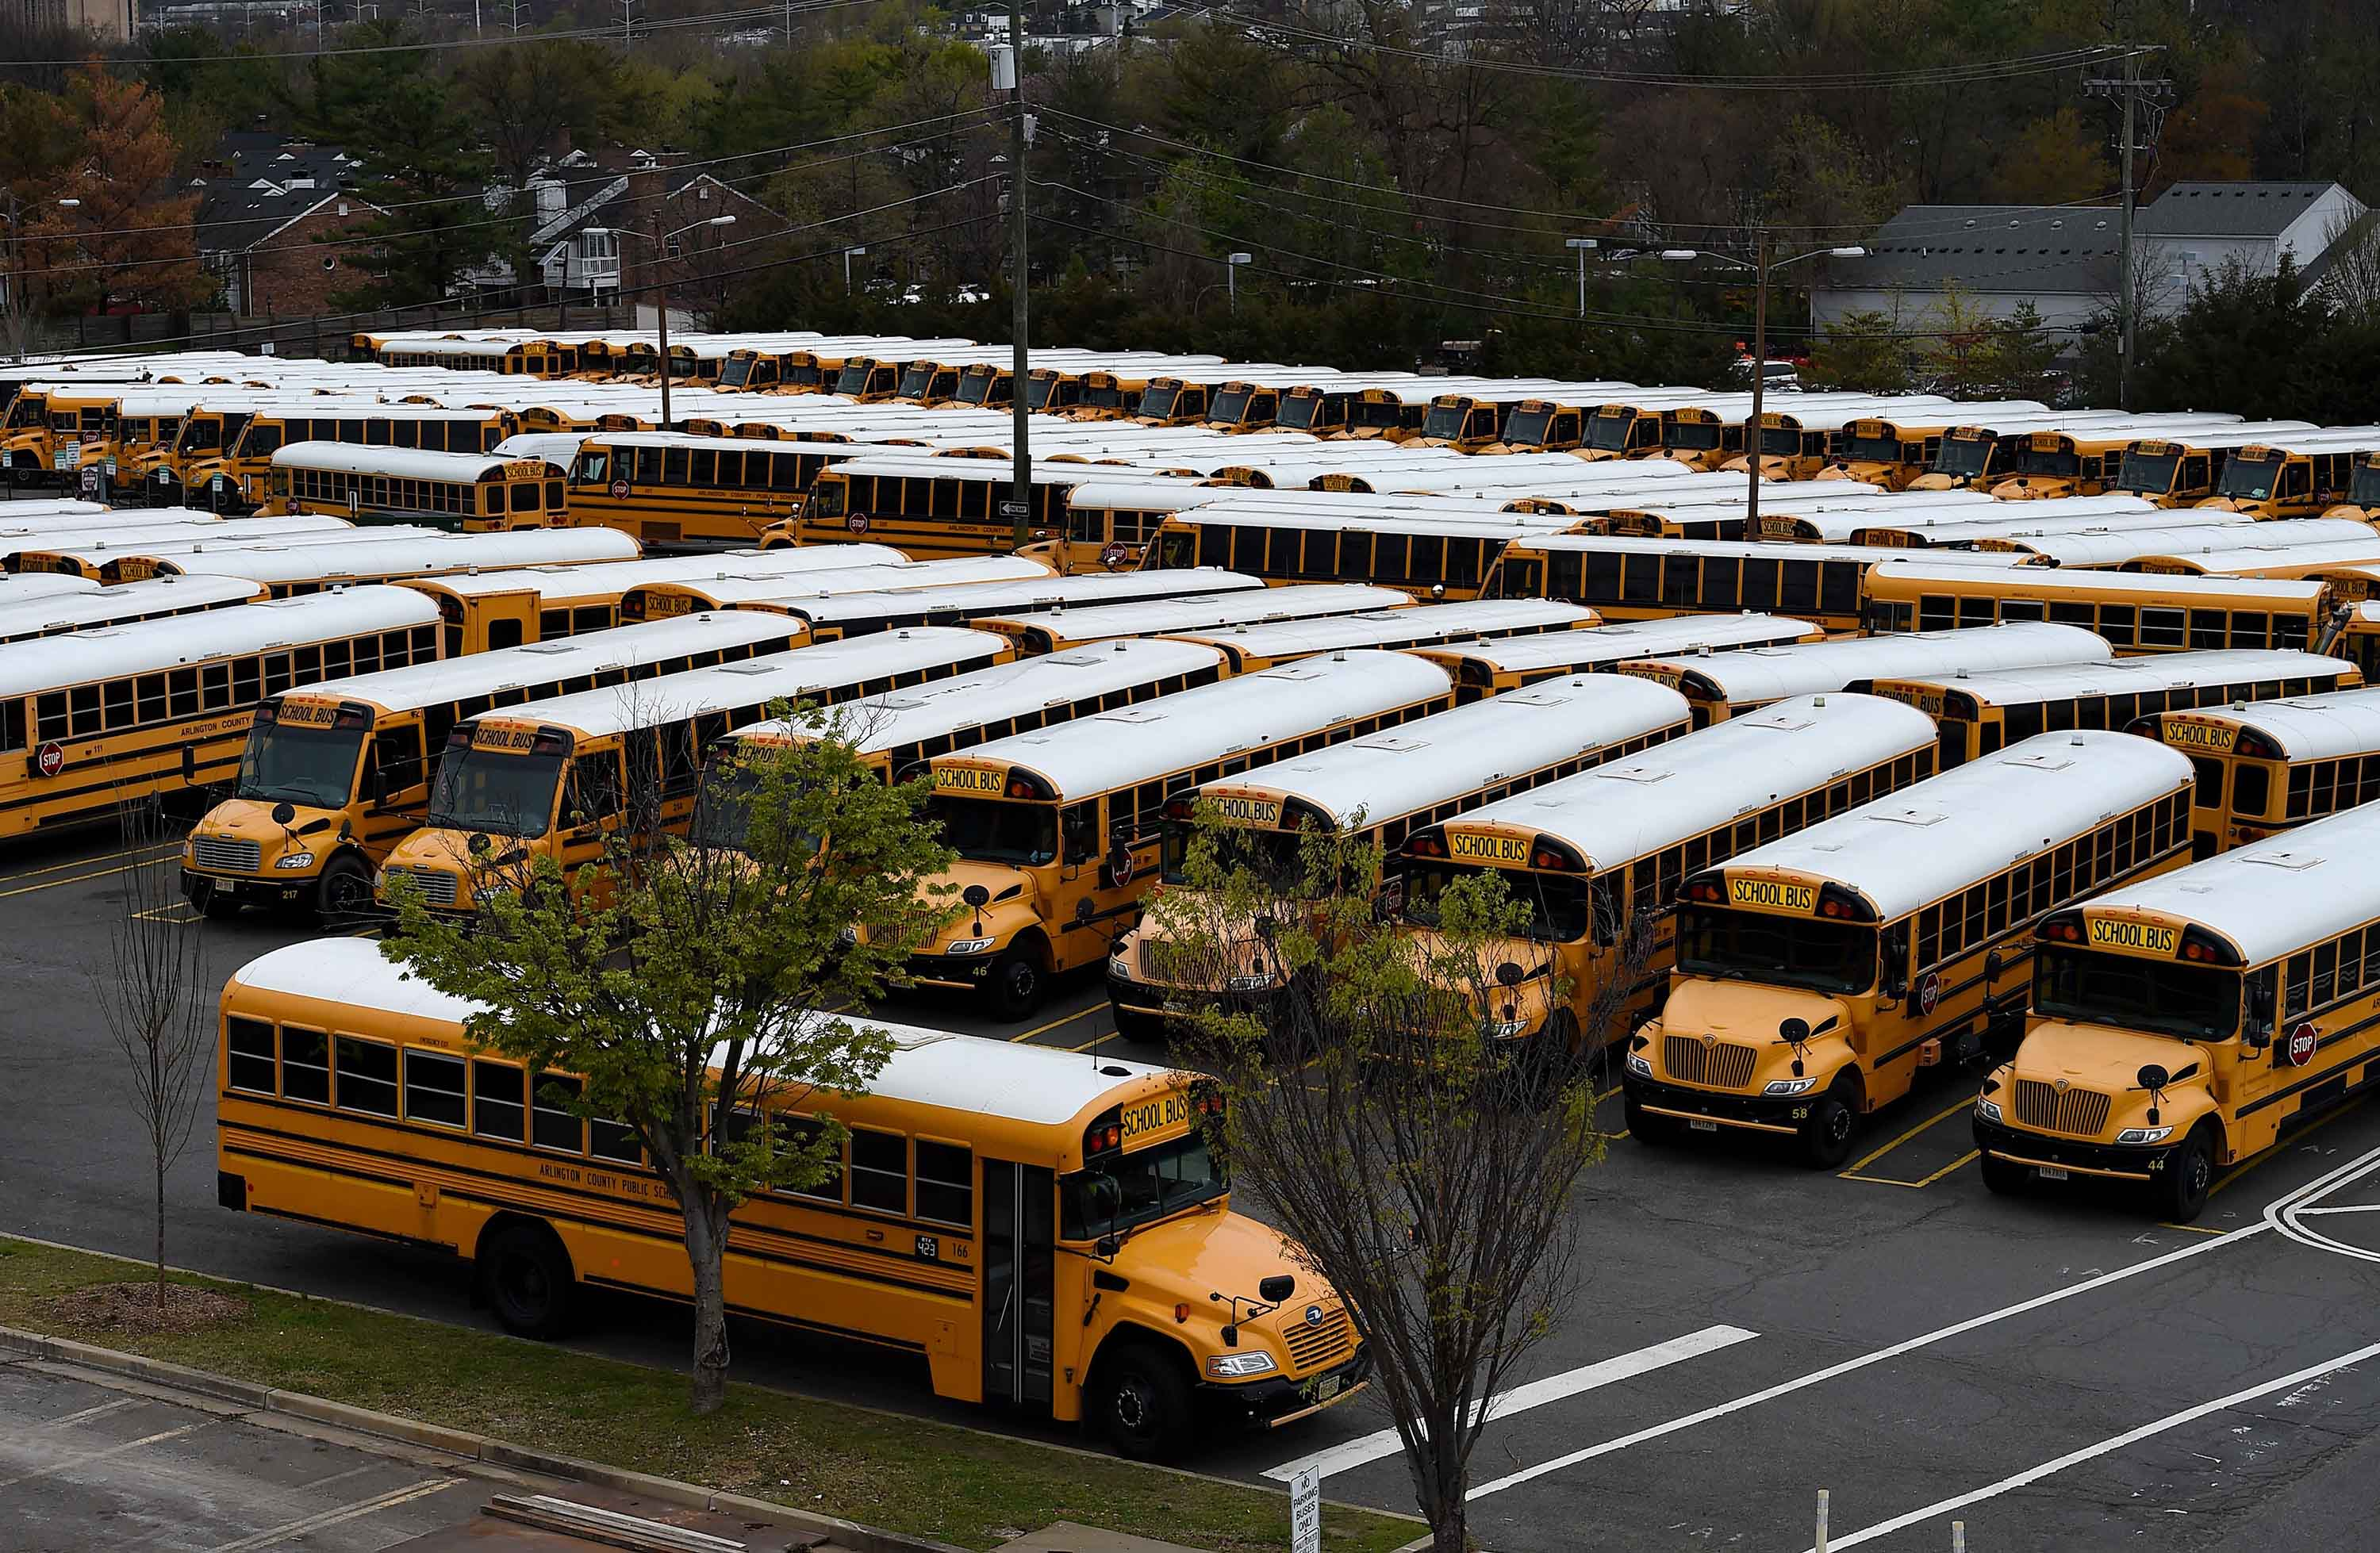 School buses are parked at the Arlington County Bus Depot in Arlington, Virginia, on March 31.